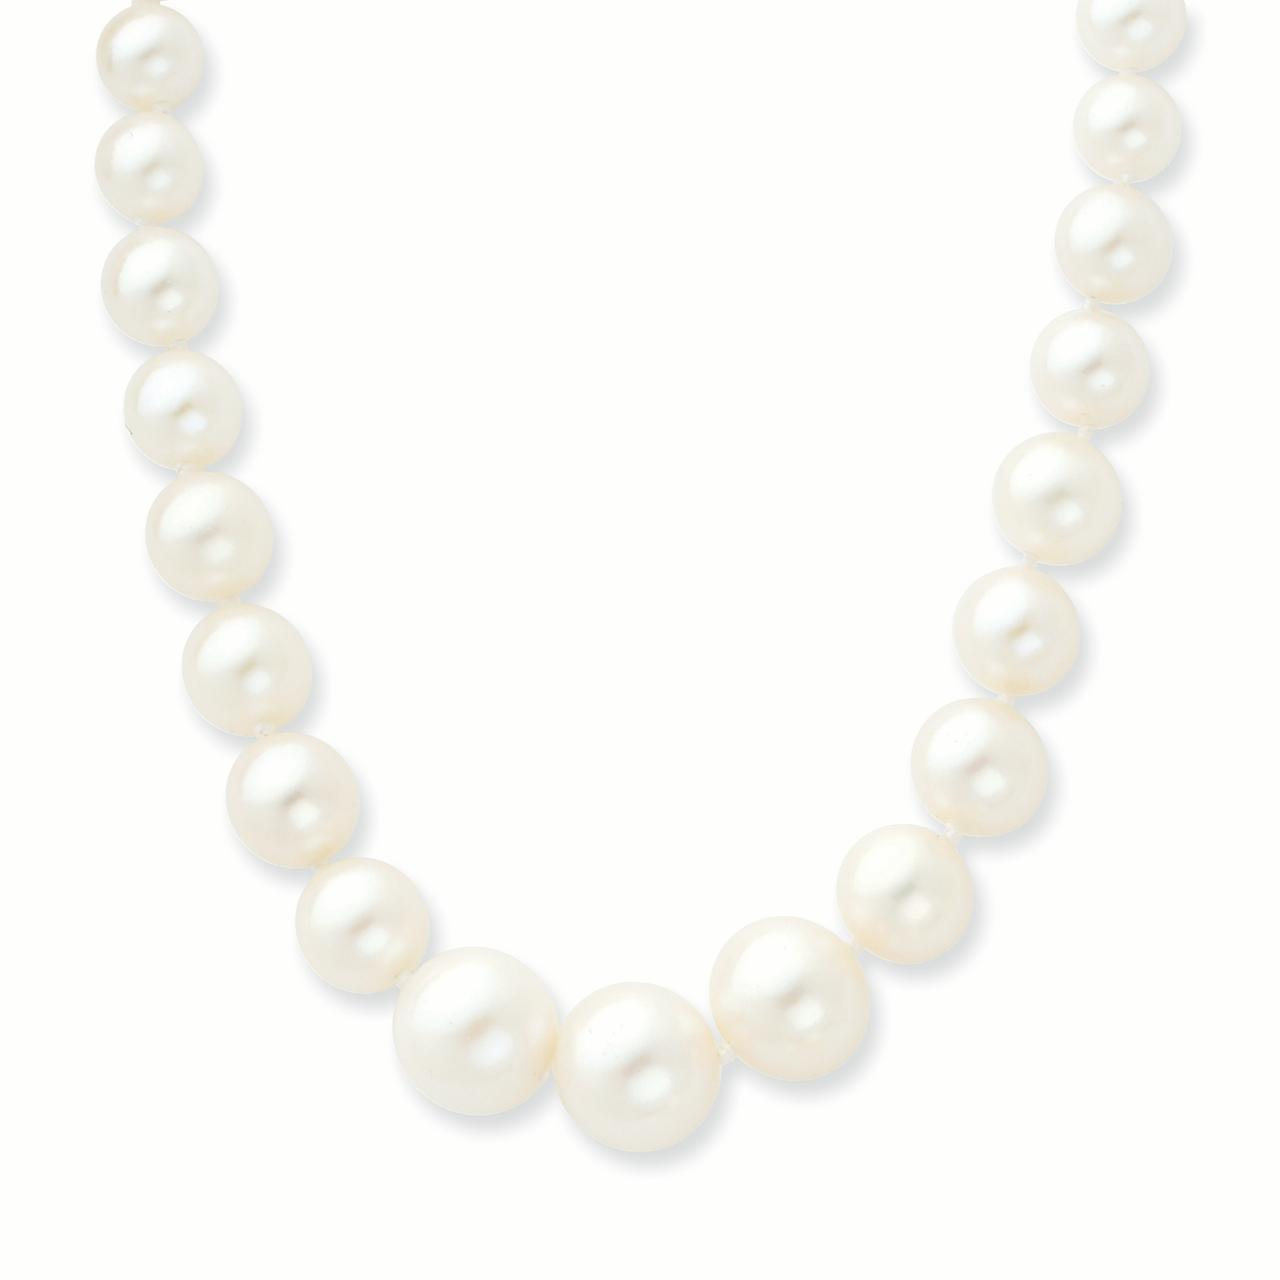 14k 4-9mm Graduated White Freshwater Cultured Pearl Necklace by CoutureJewelers